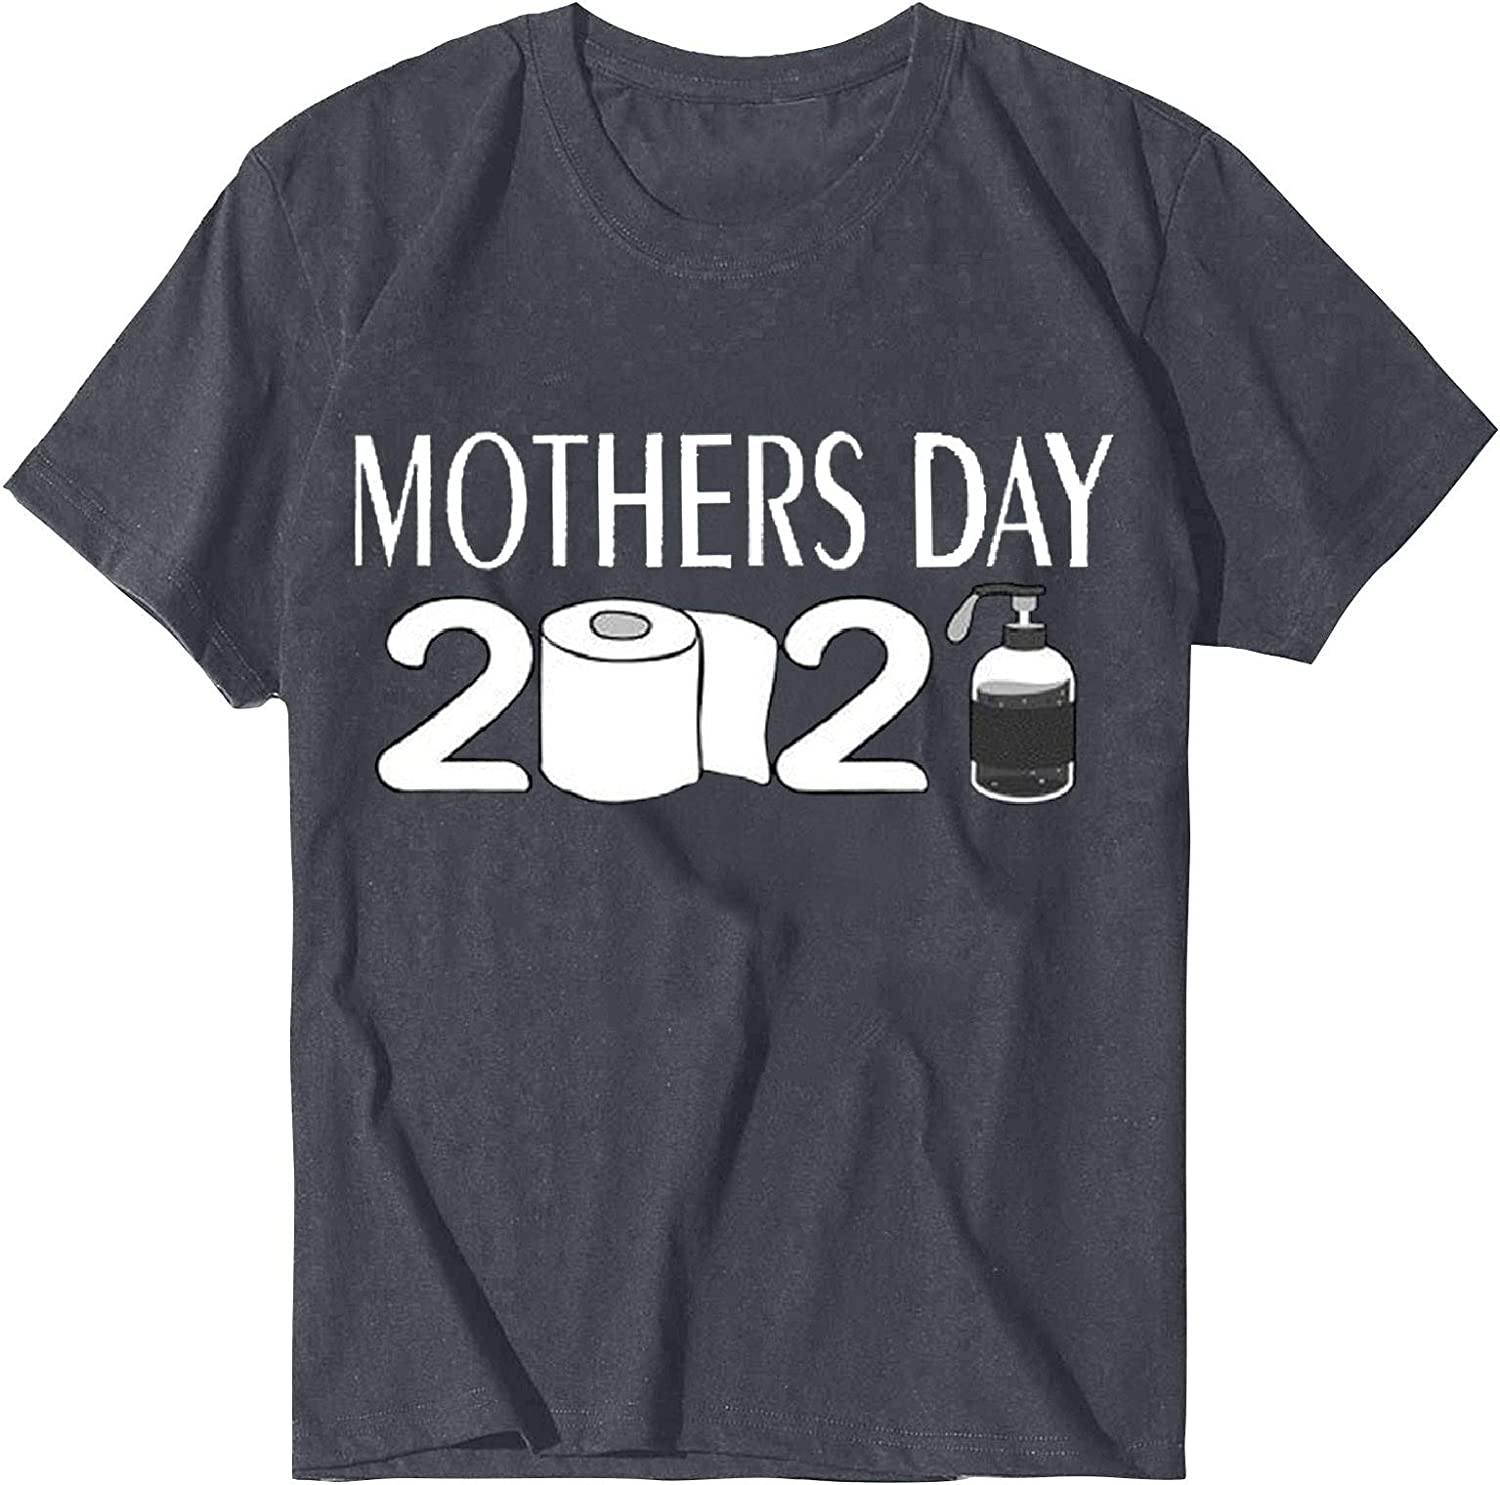 Shirts for Women Yuaekjes Happy Mother's Day Letter Print T-Shirt Short Sleeve O-Neck Loose Fit Blouse Tee Tops Tunic